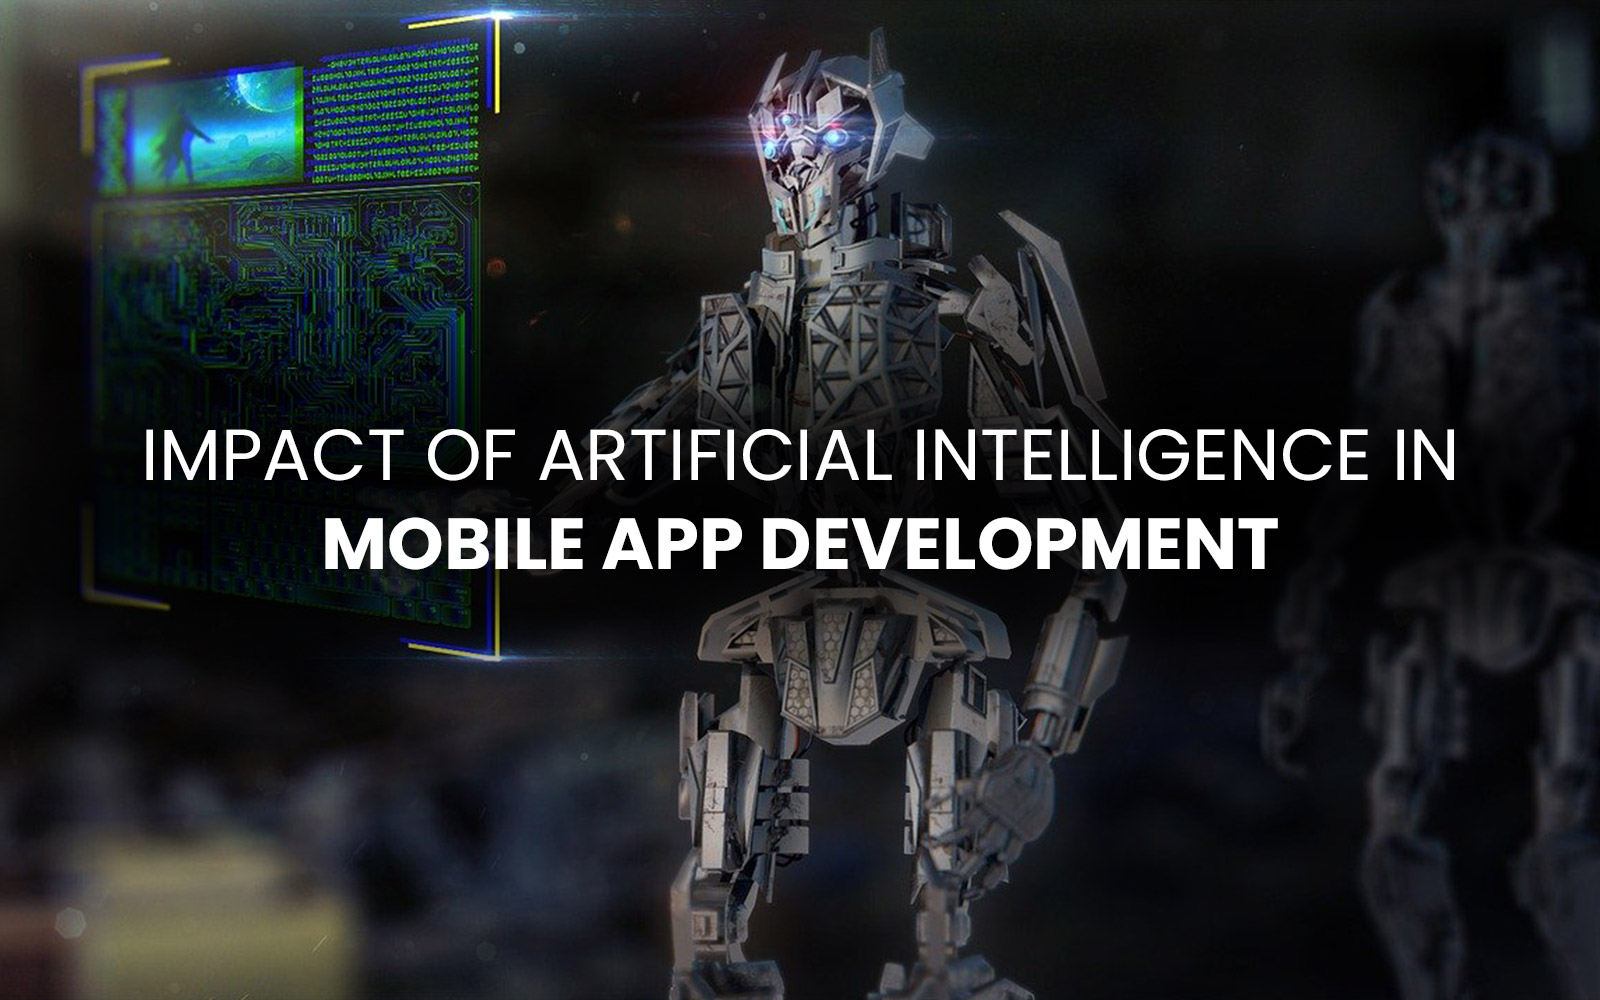 Impact of Artificial Intelligence in Mobile App Development